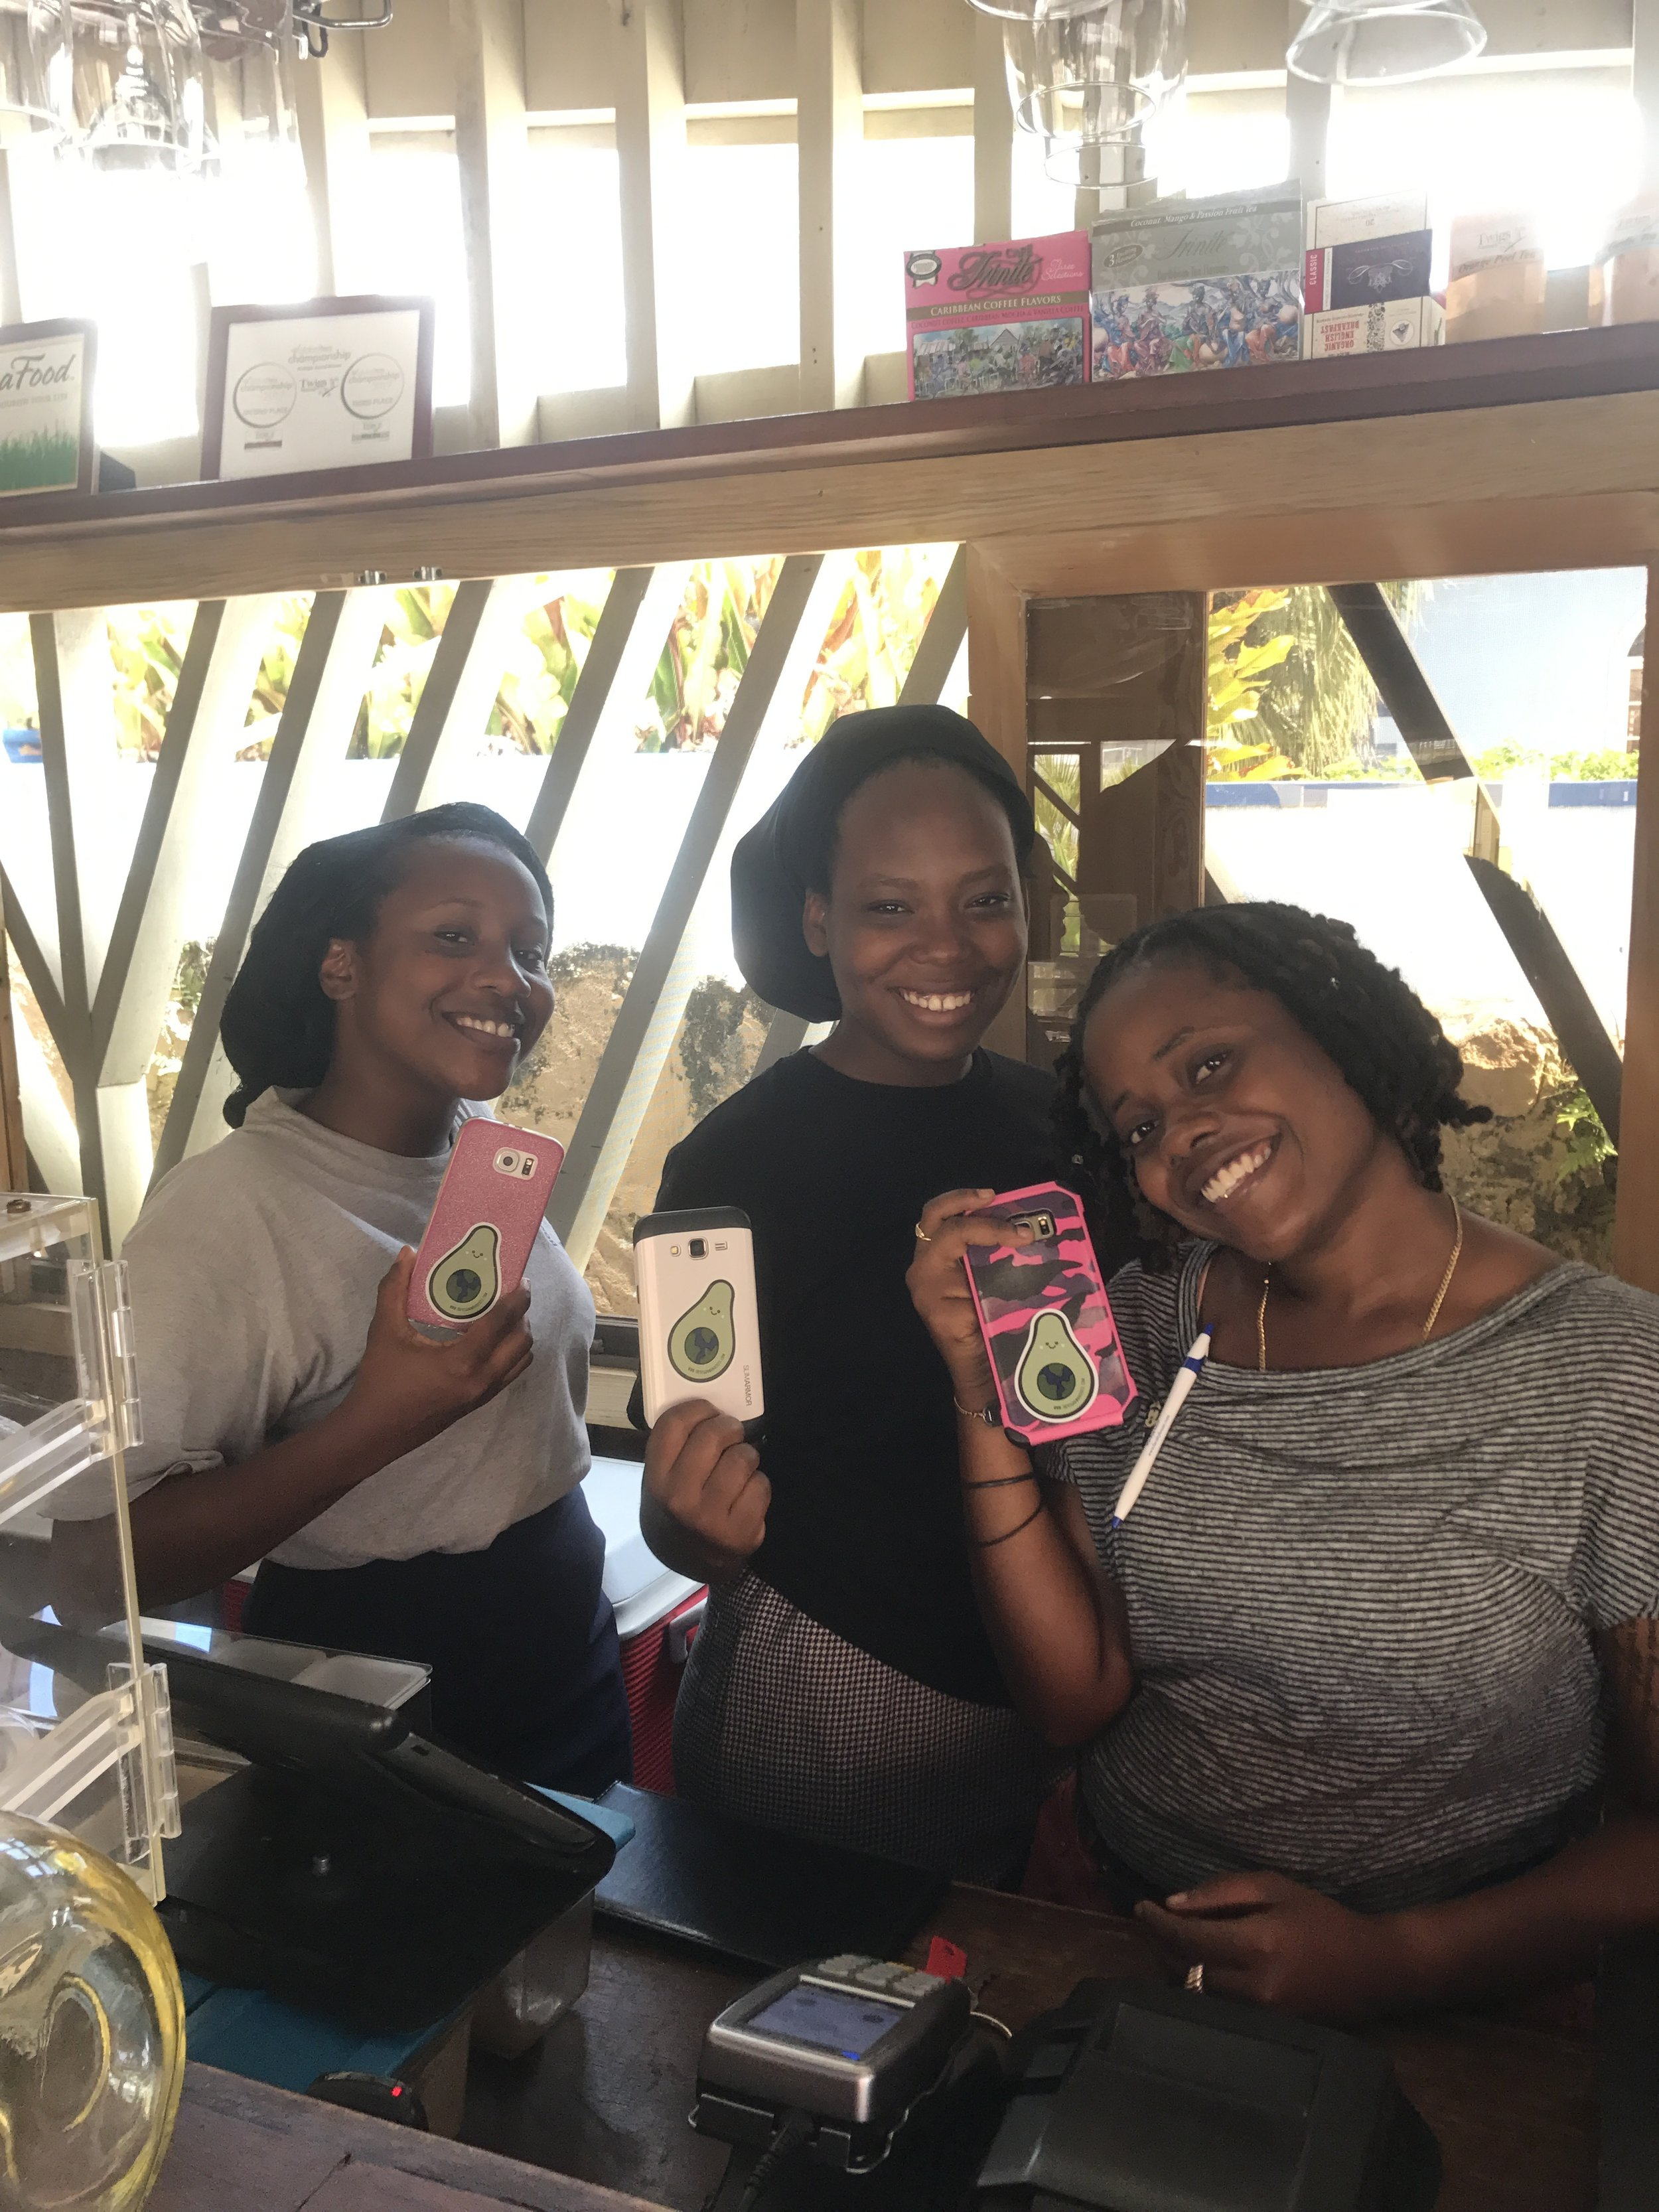 The lovely staff of The Good Life rocking their new Vegan Wanderess stickers.